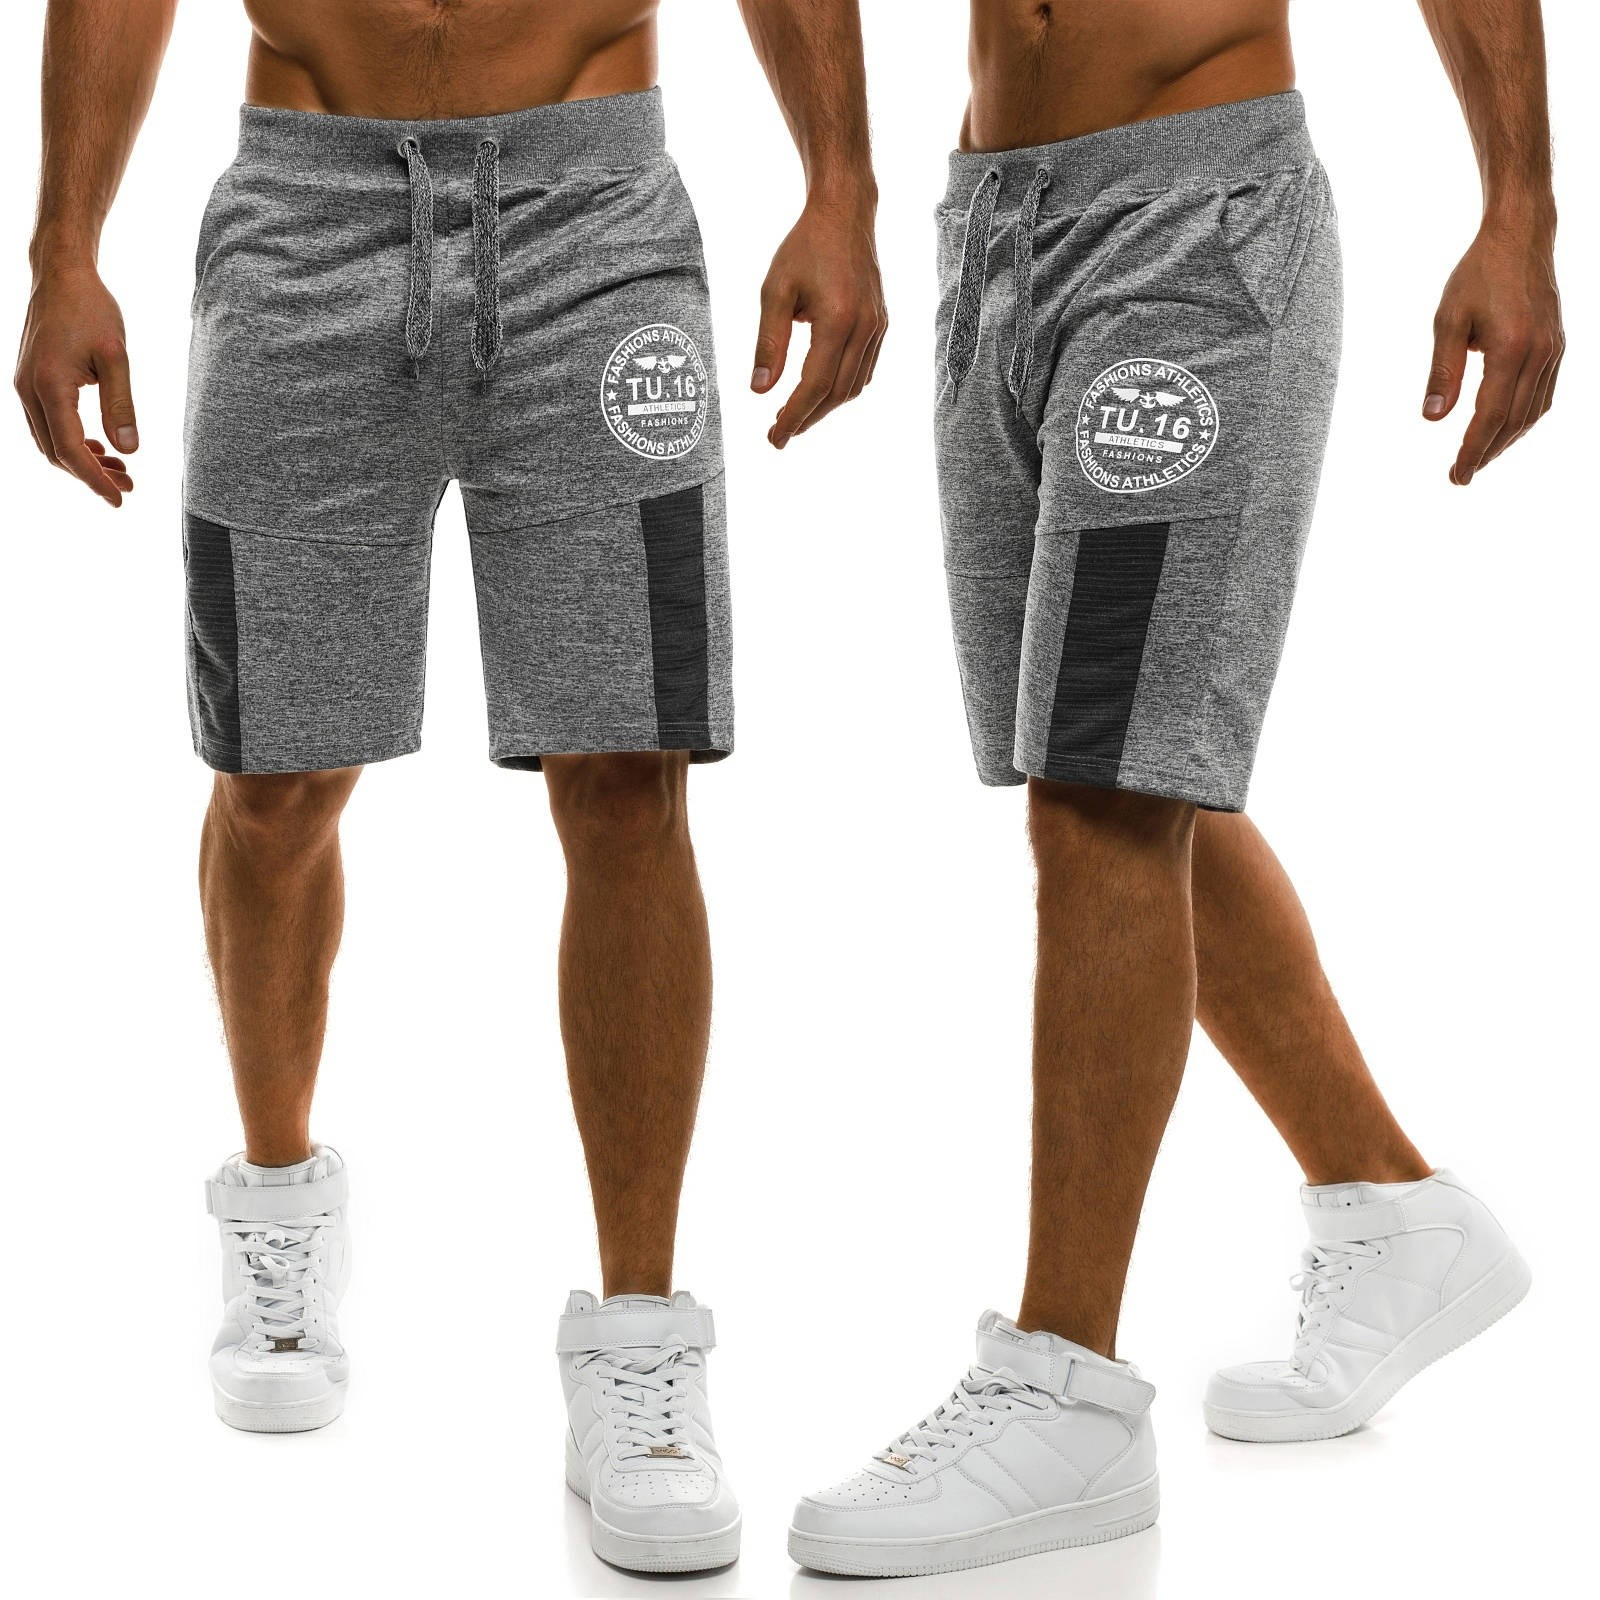 ZOGAA Men Shorts Sweatpants Fitness Knee-Length Jogging Casual Fashion New 3-Color Loose